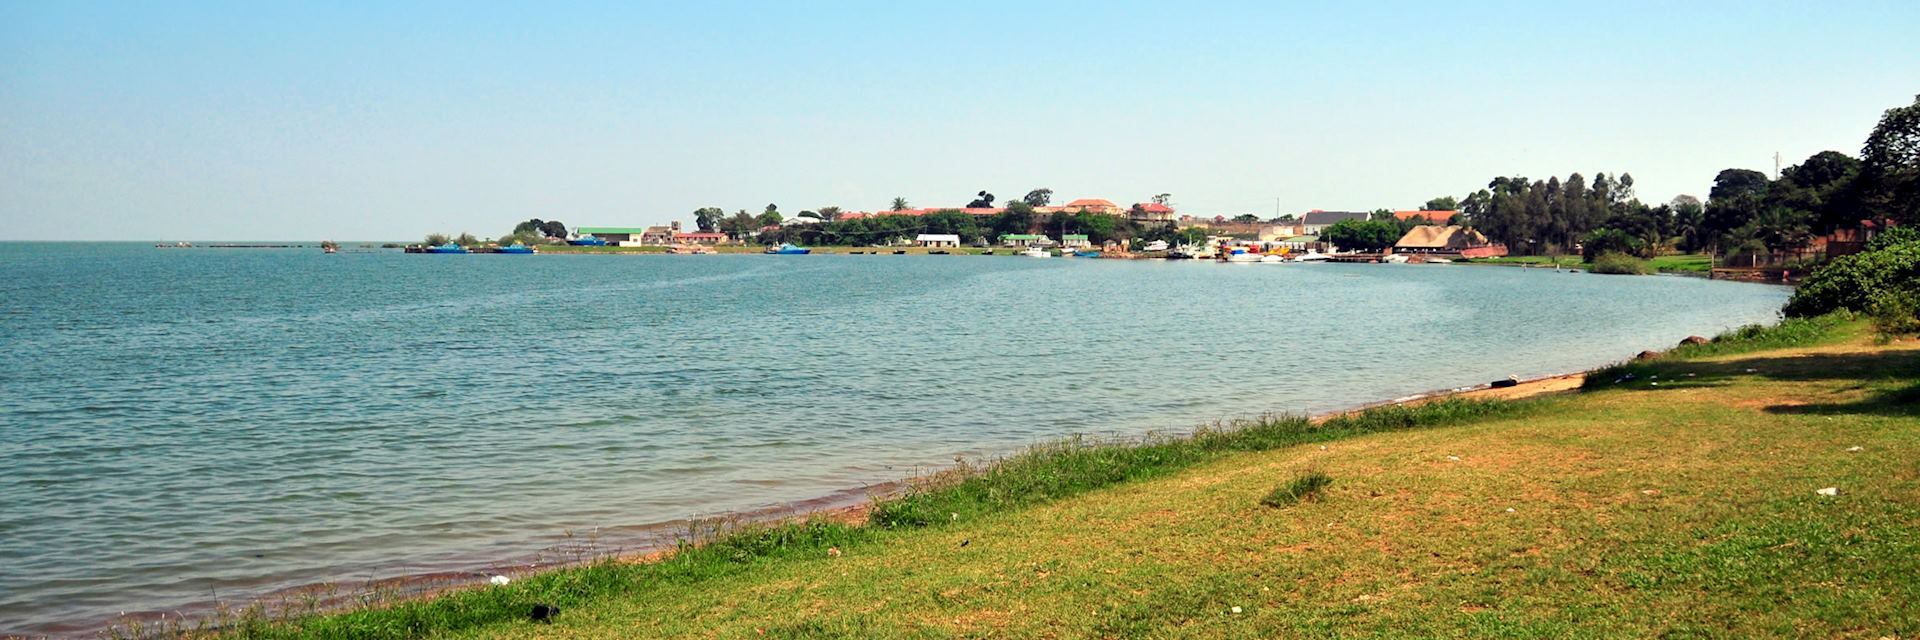 Botanical Beach in Entebbe